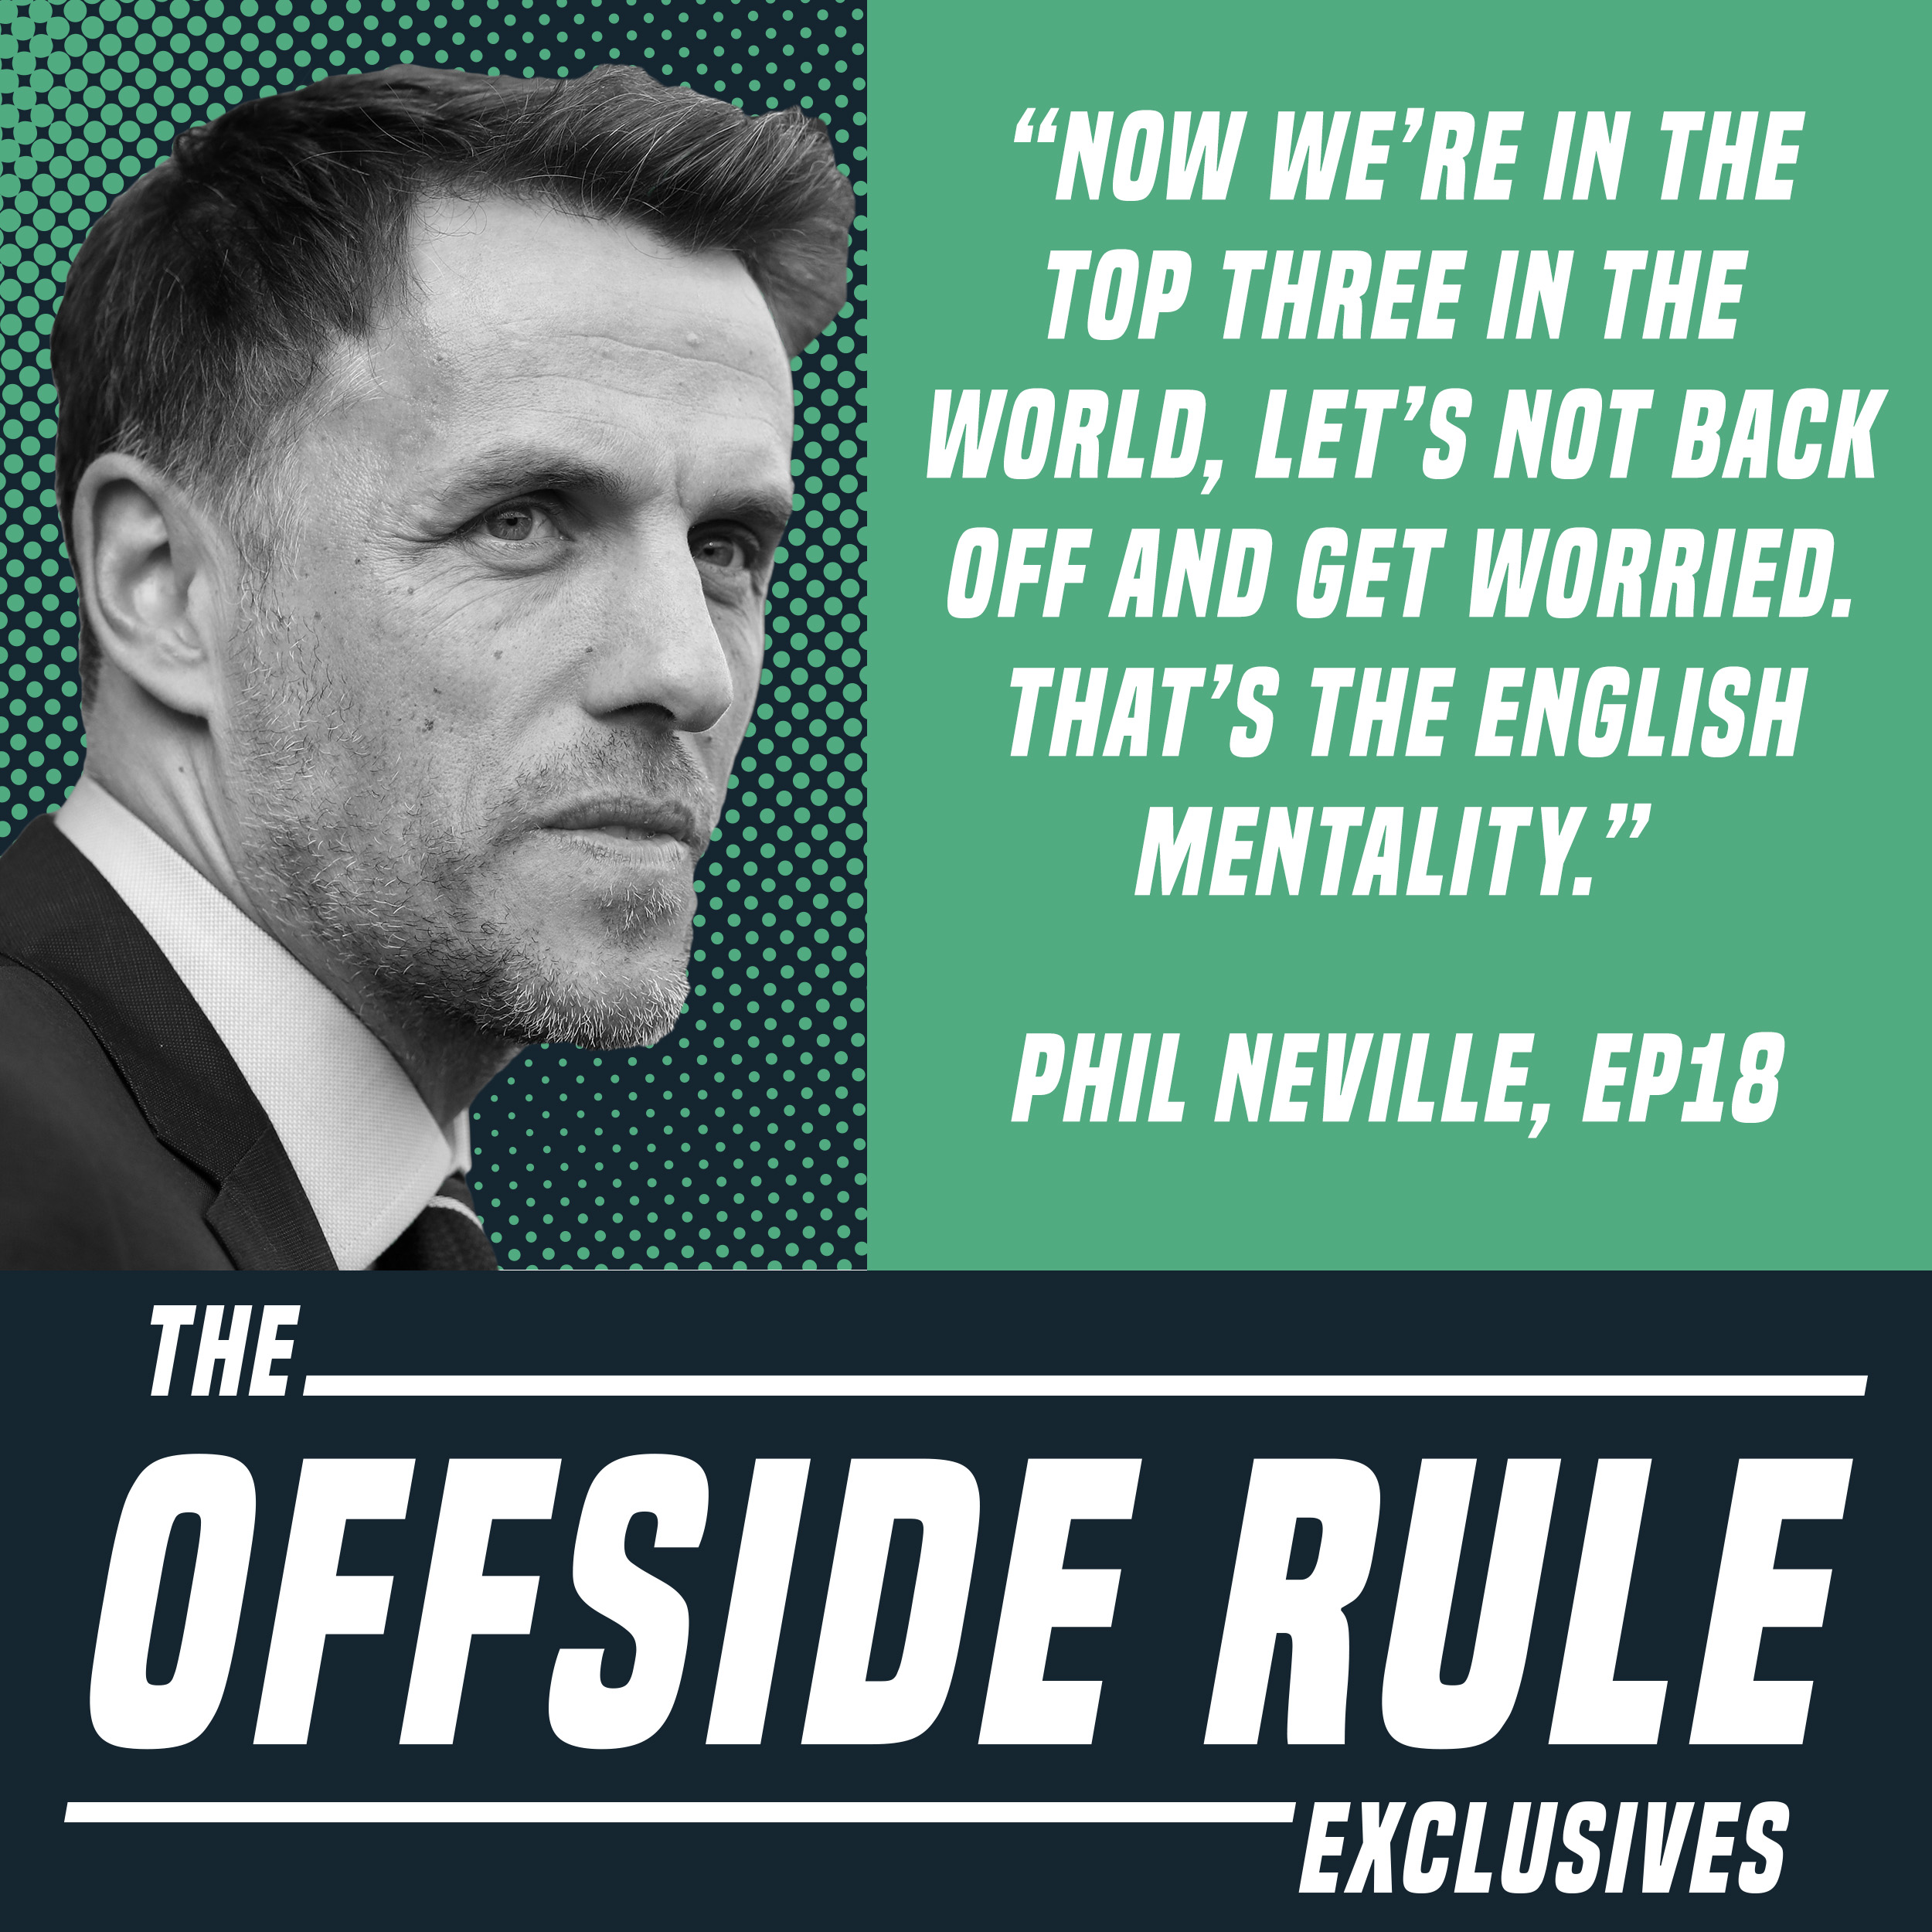 Now we're in the top three in the world, let's not back off an get worried. That's the English mentality. Phil Neville